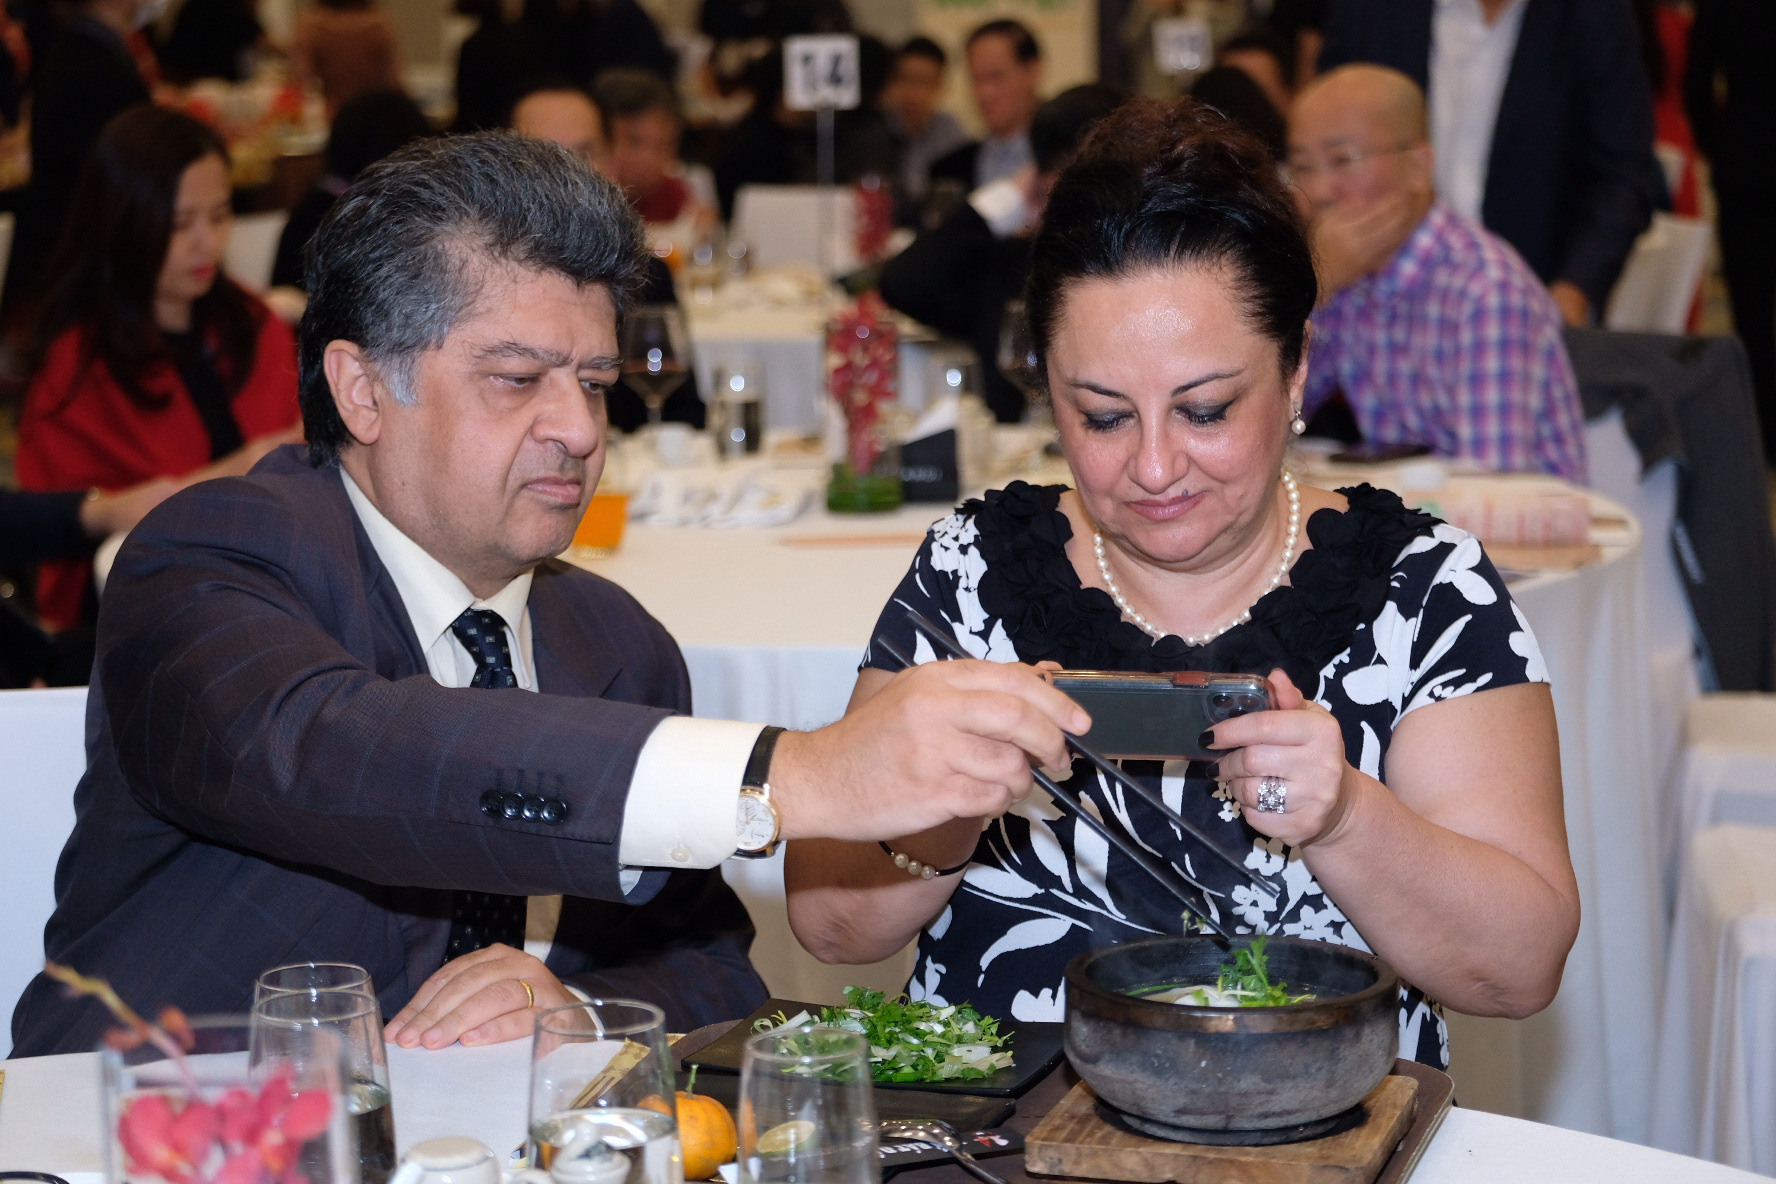 Vahram Kazhoyan, Armenia's ambassador to Vietnam, and his wife taste pho served in a stone bowl at the gala dinner of this year's 'Day of Pho' event in Hanoi, December 10, 2020. Photo: Nam Tran / Tuoi Tre